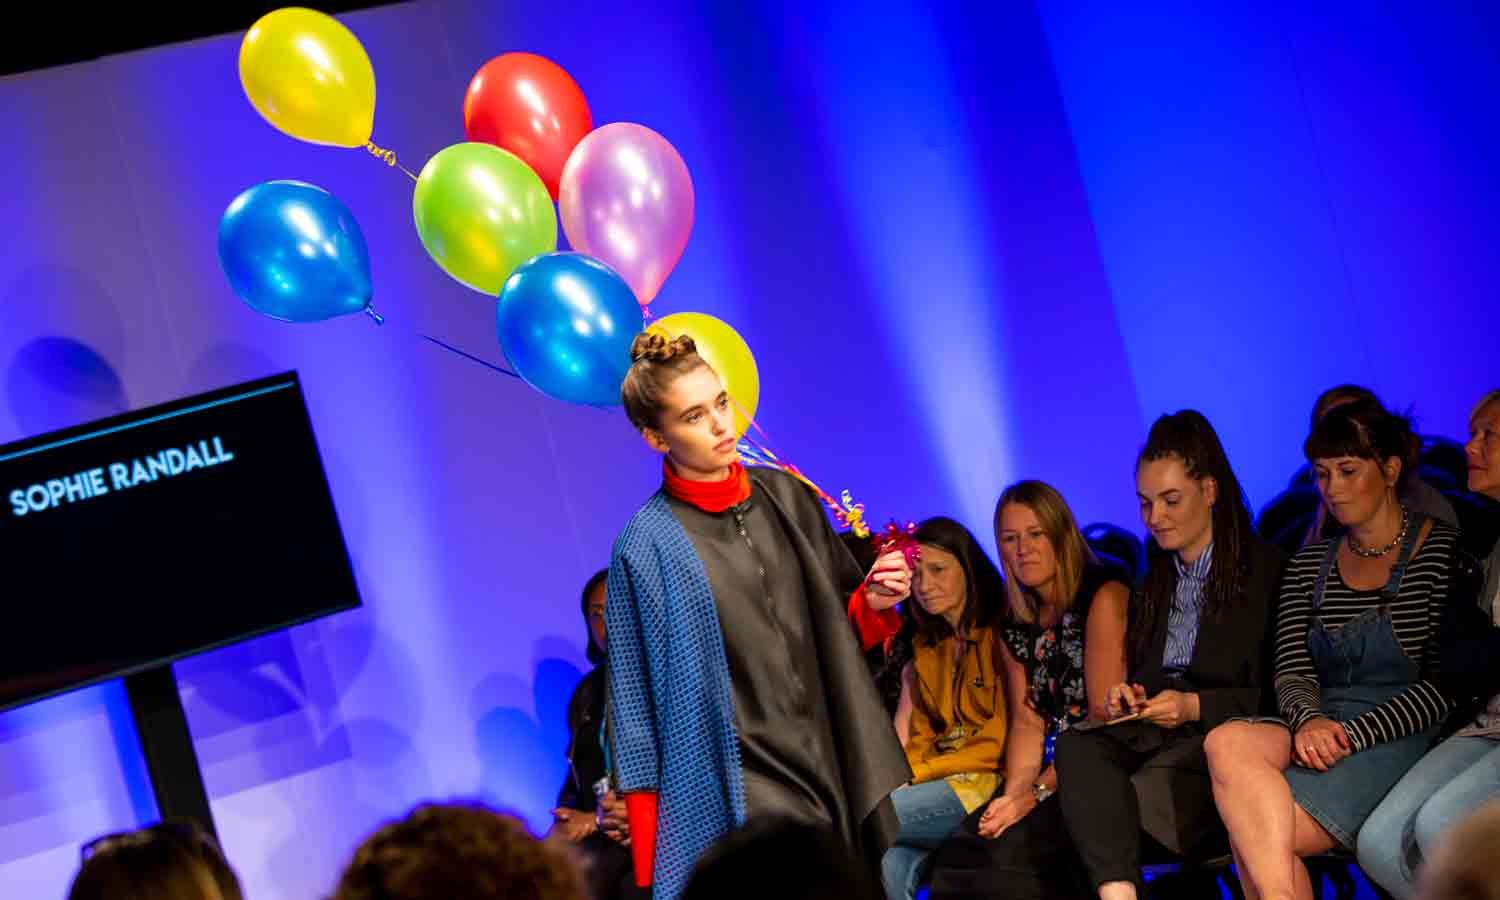 Fashion students' designs wow audience at sell-out catwalk show